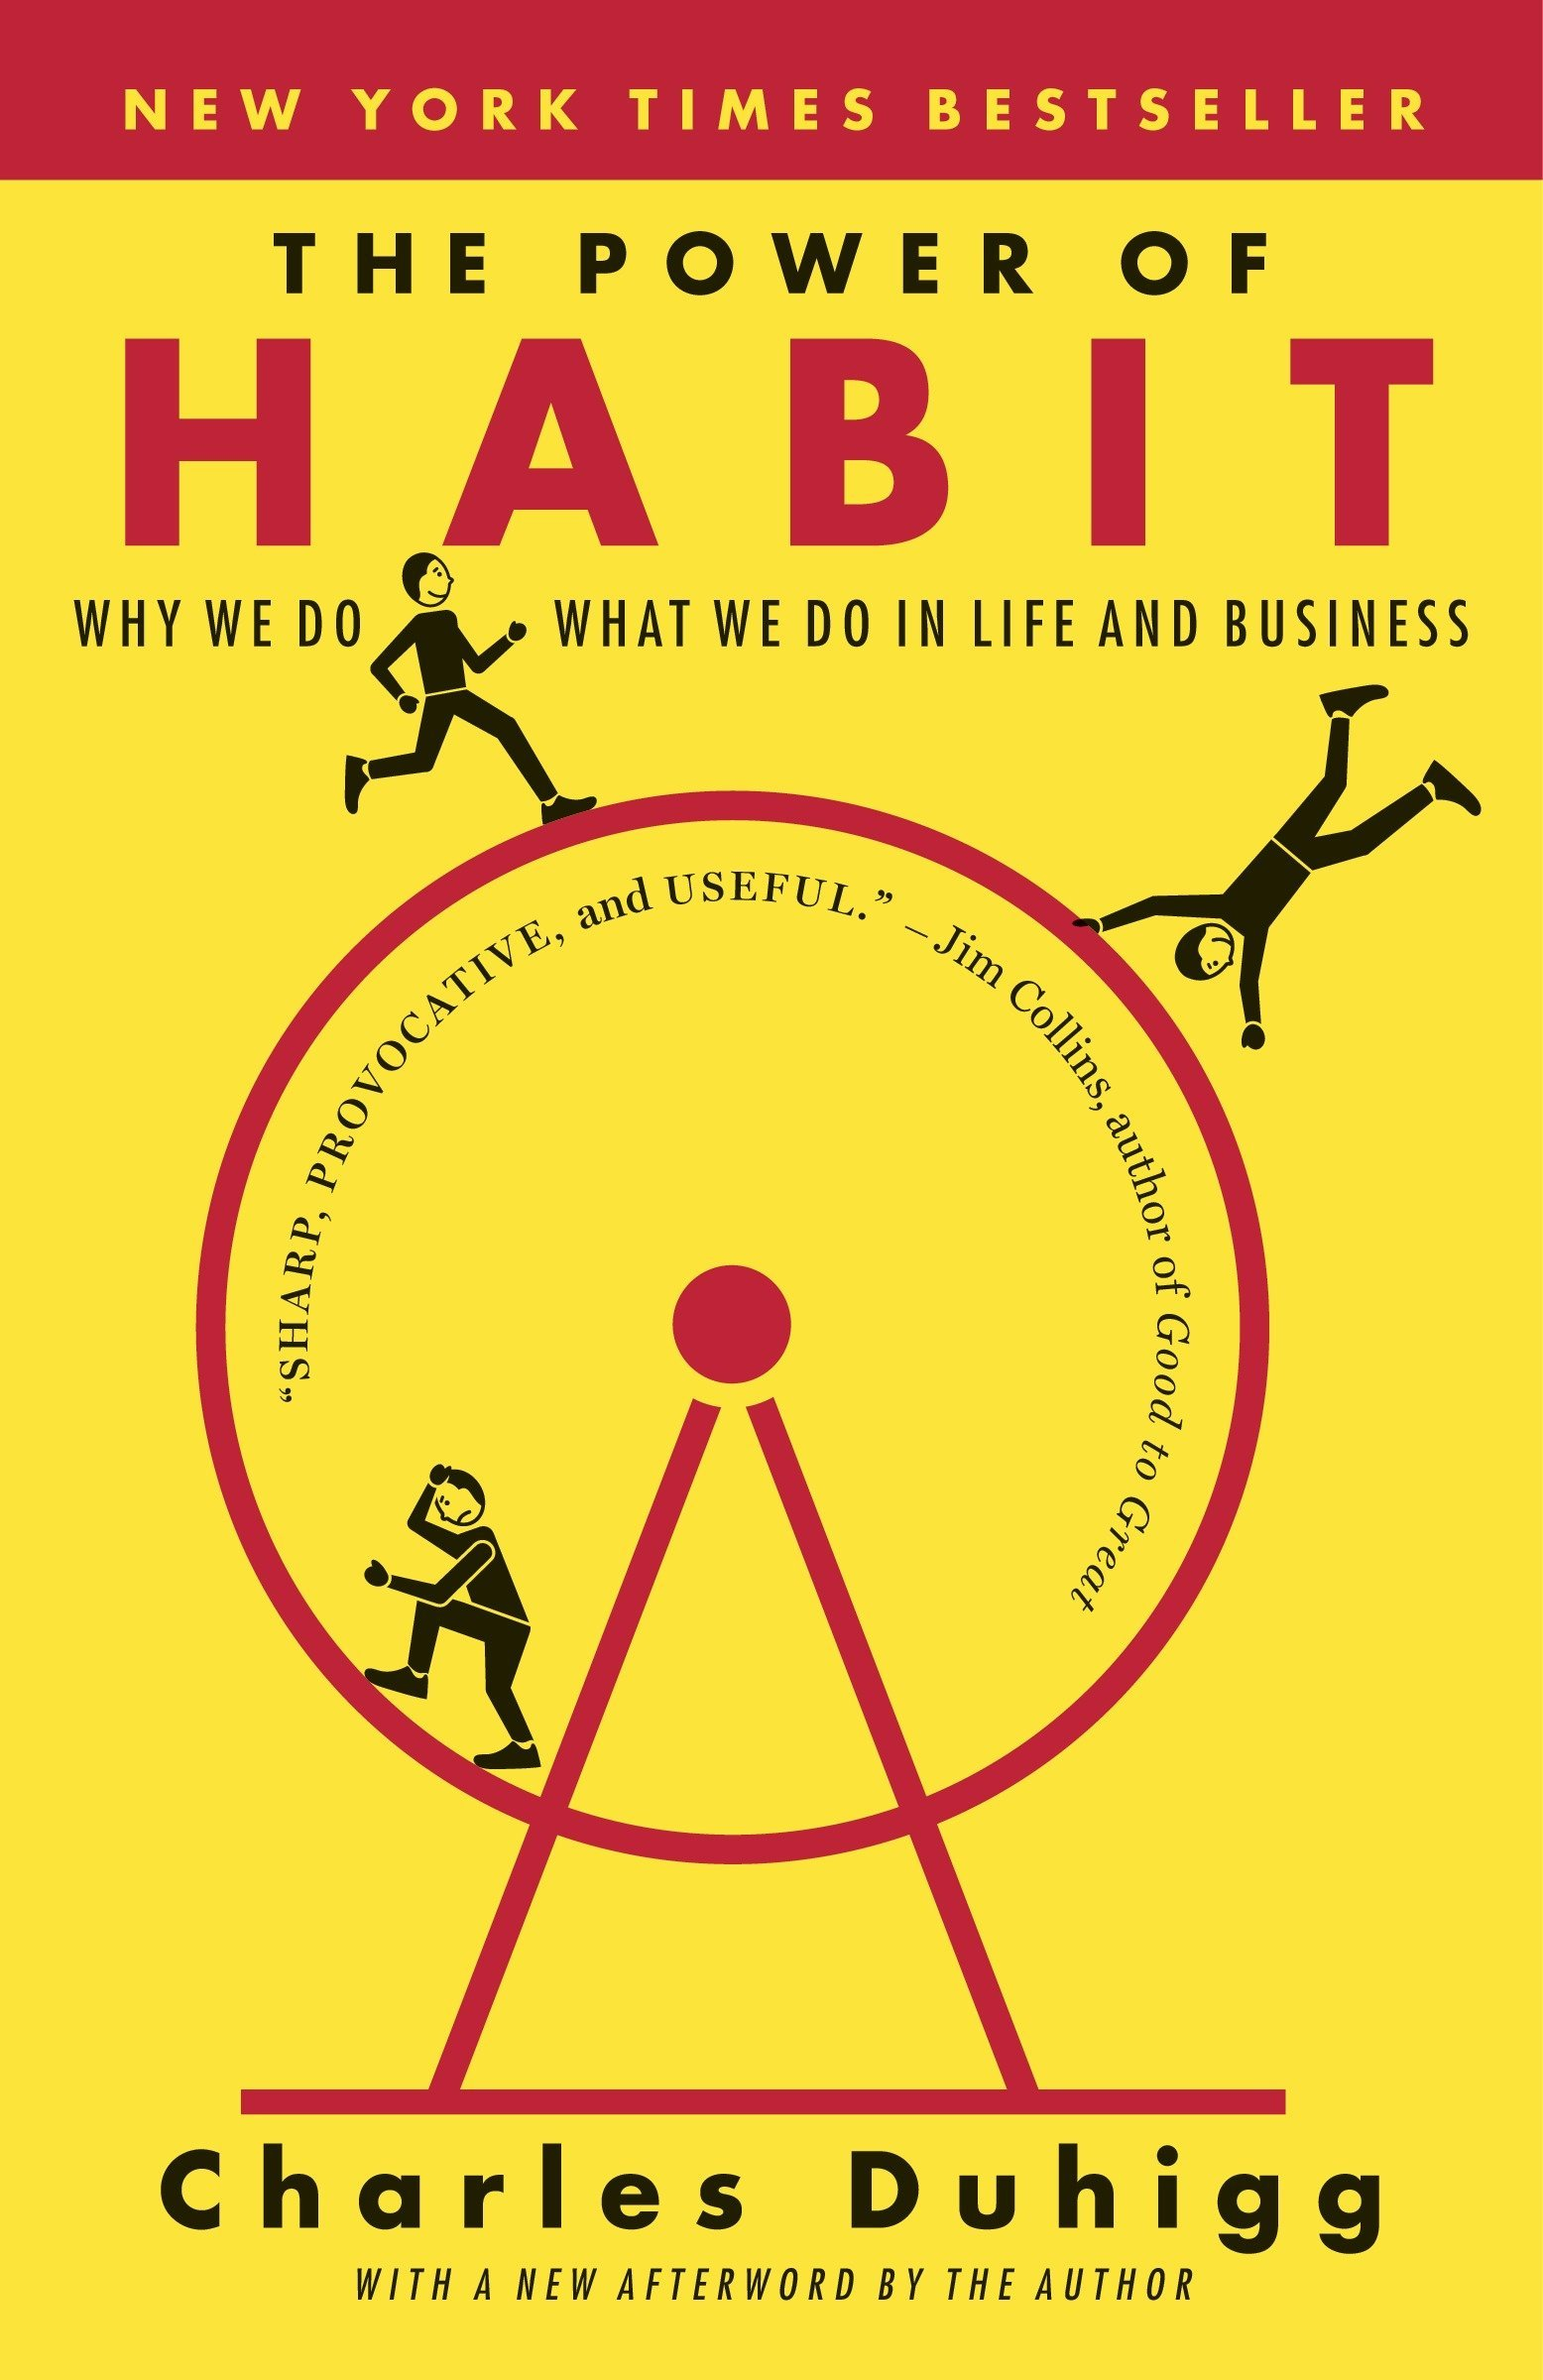 Charles Duhigg – Power of Habits